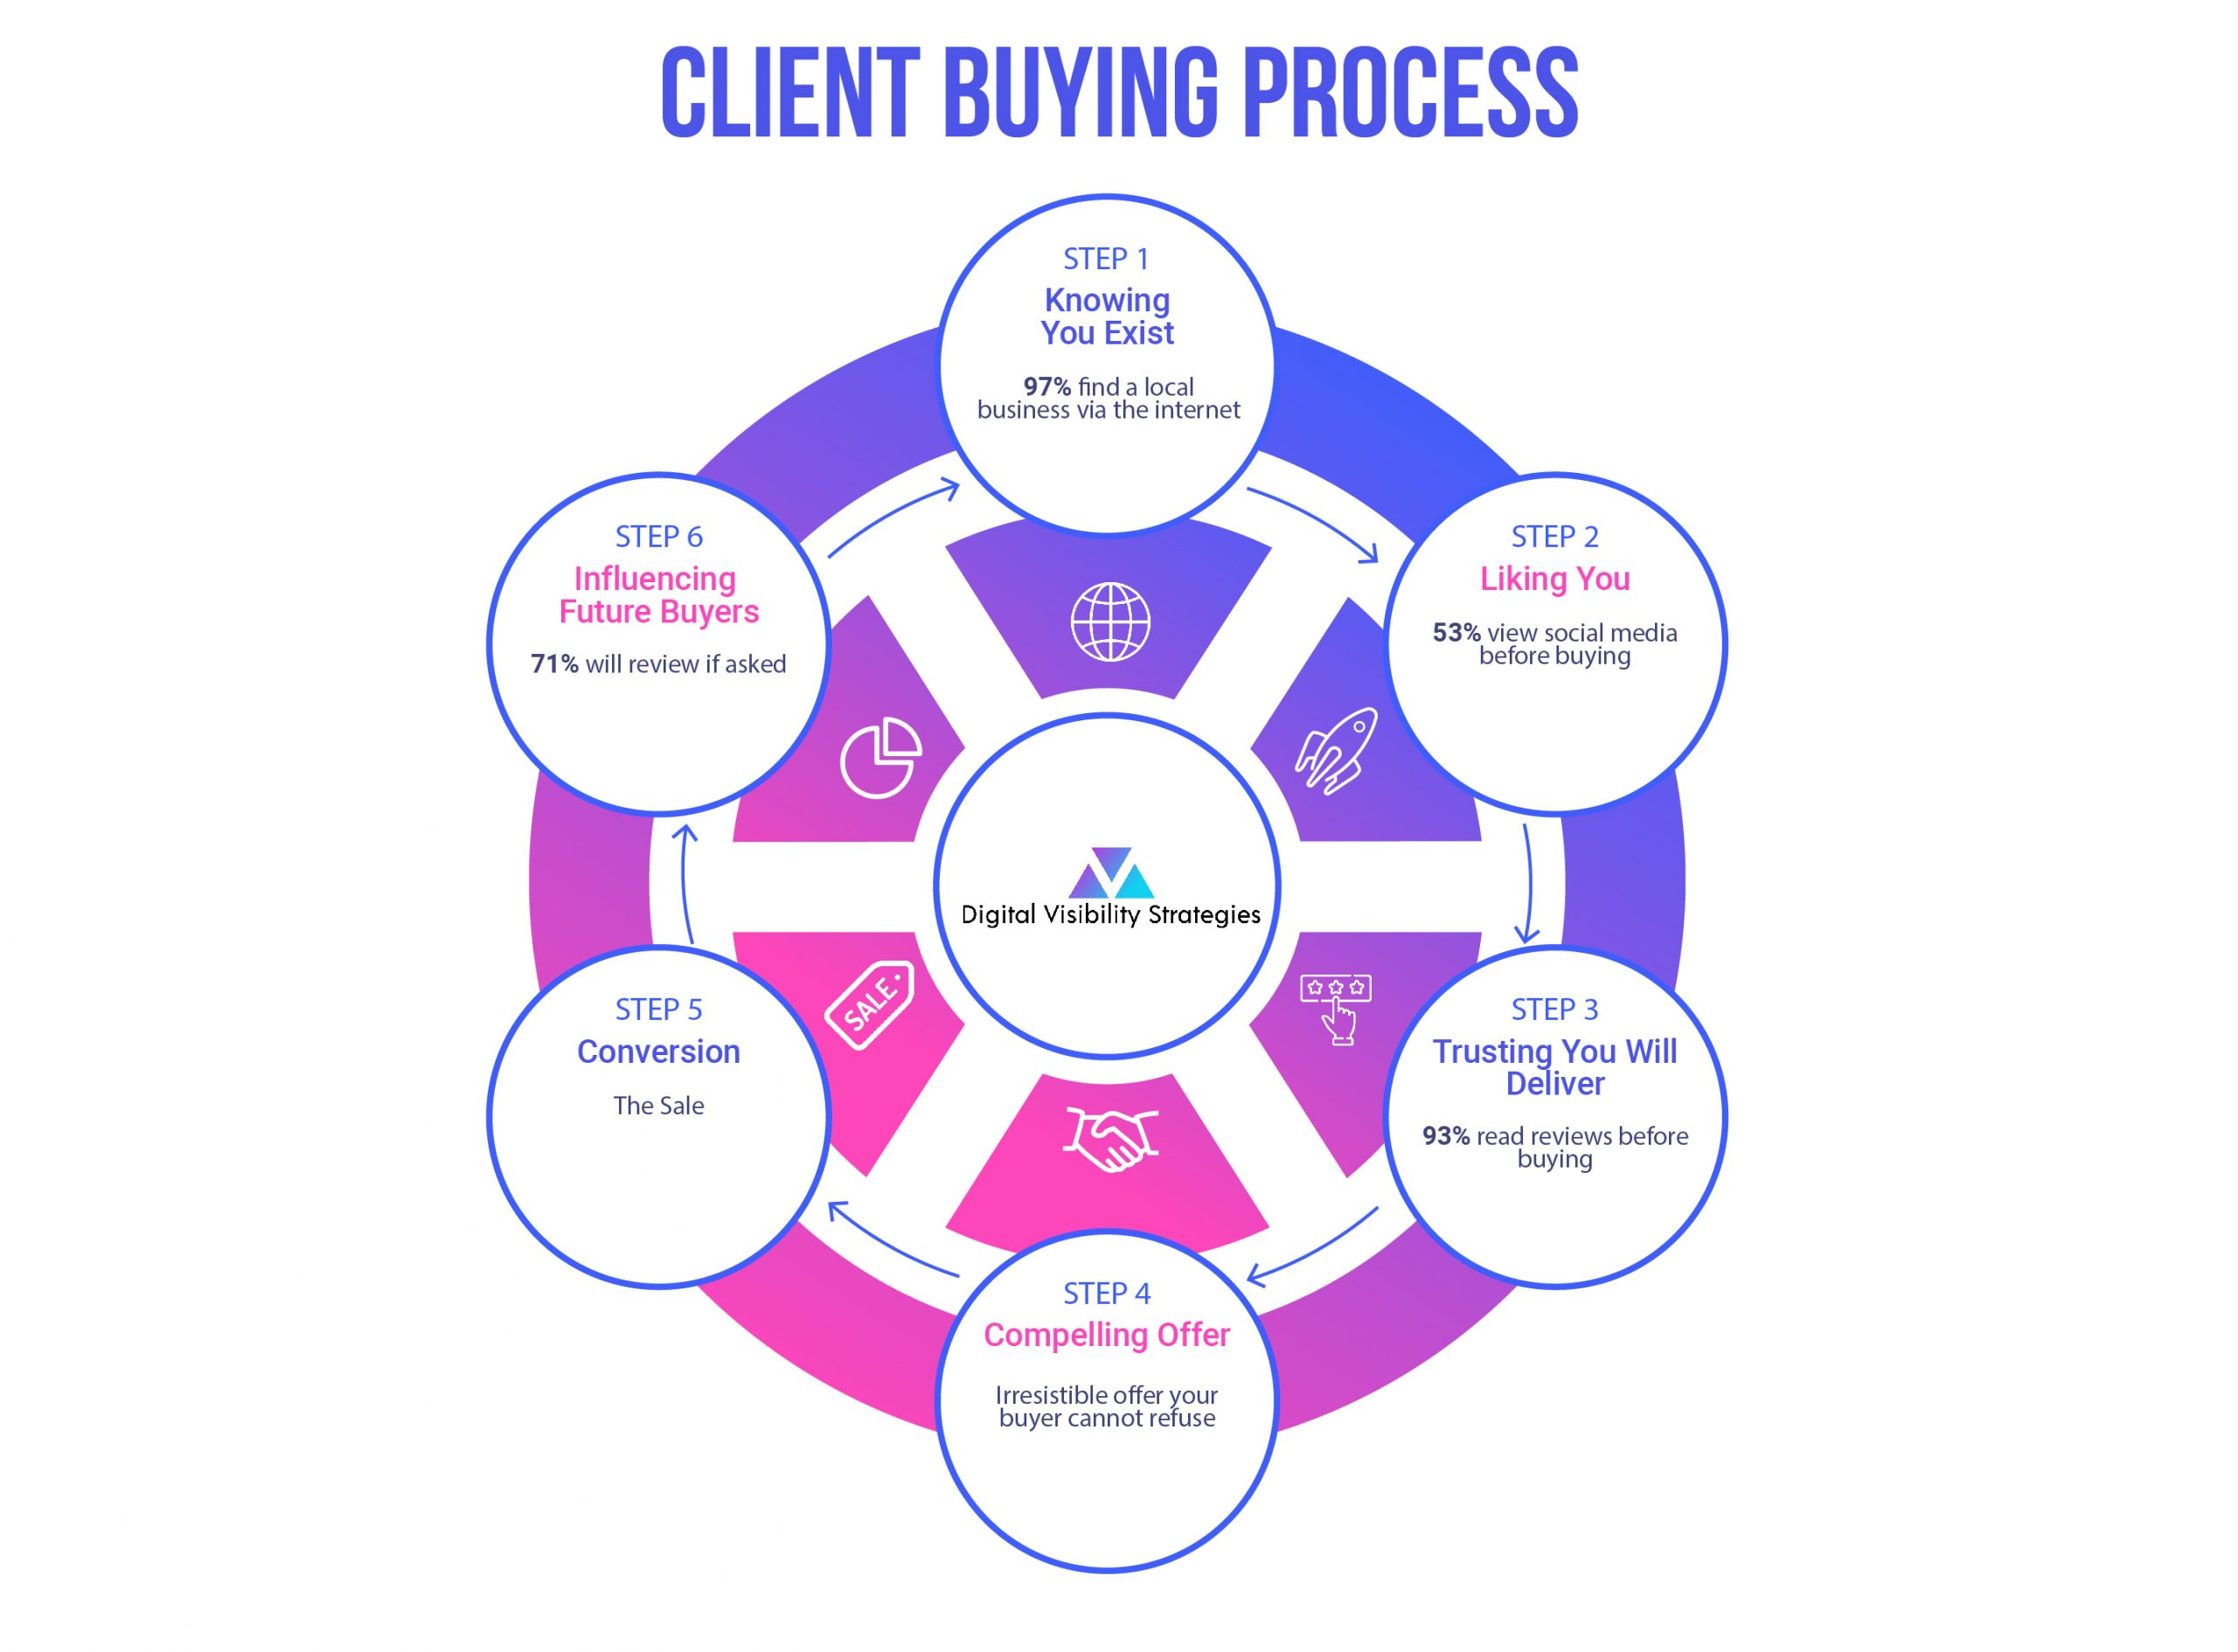 Client Buying Process